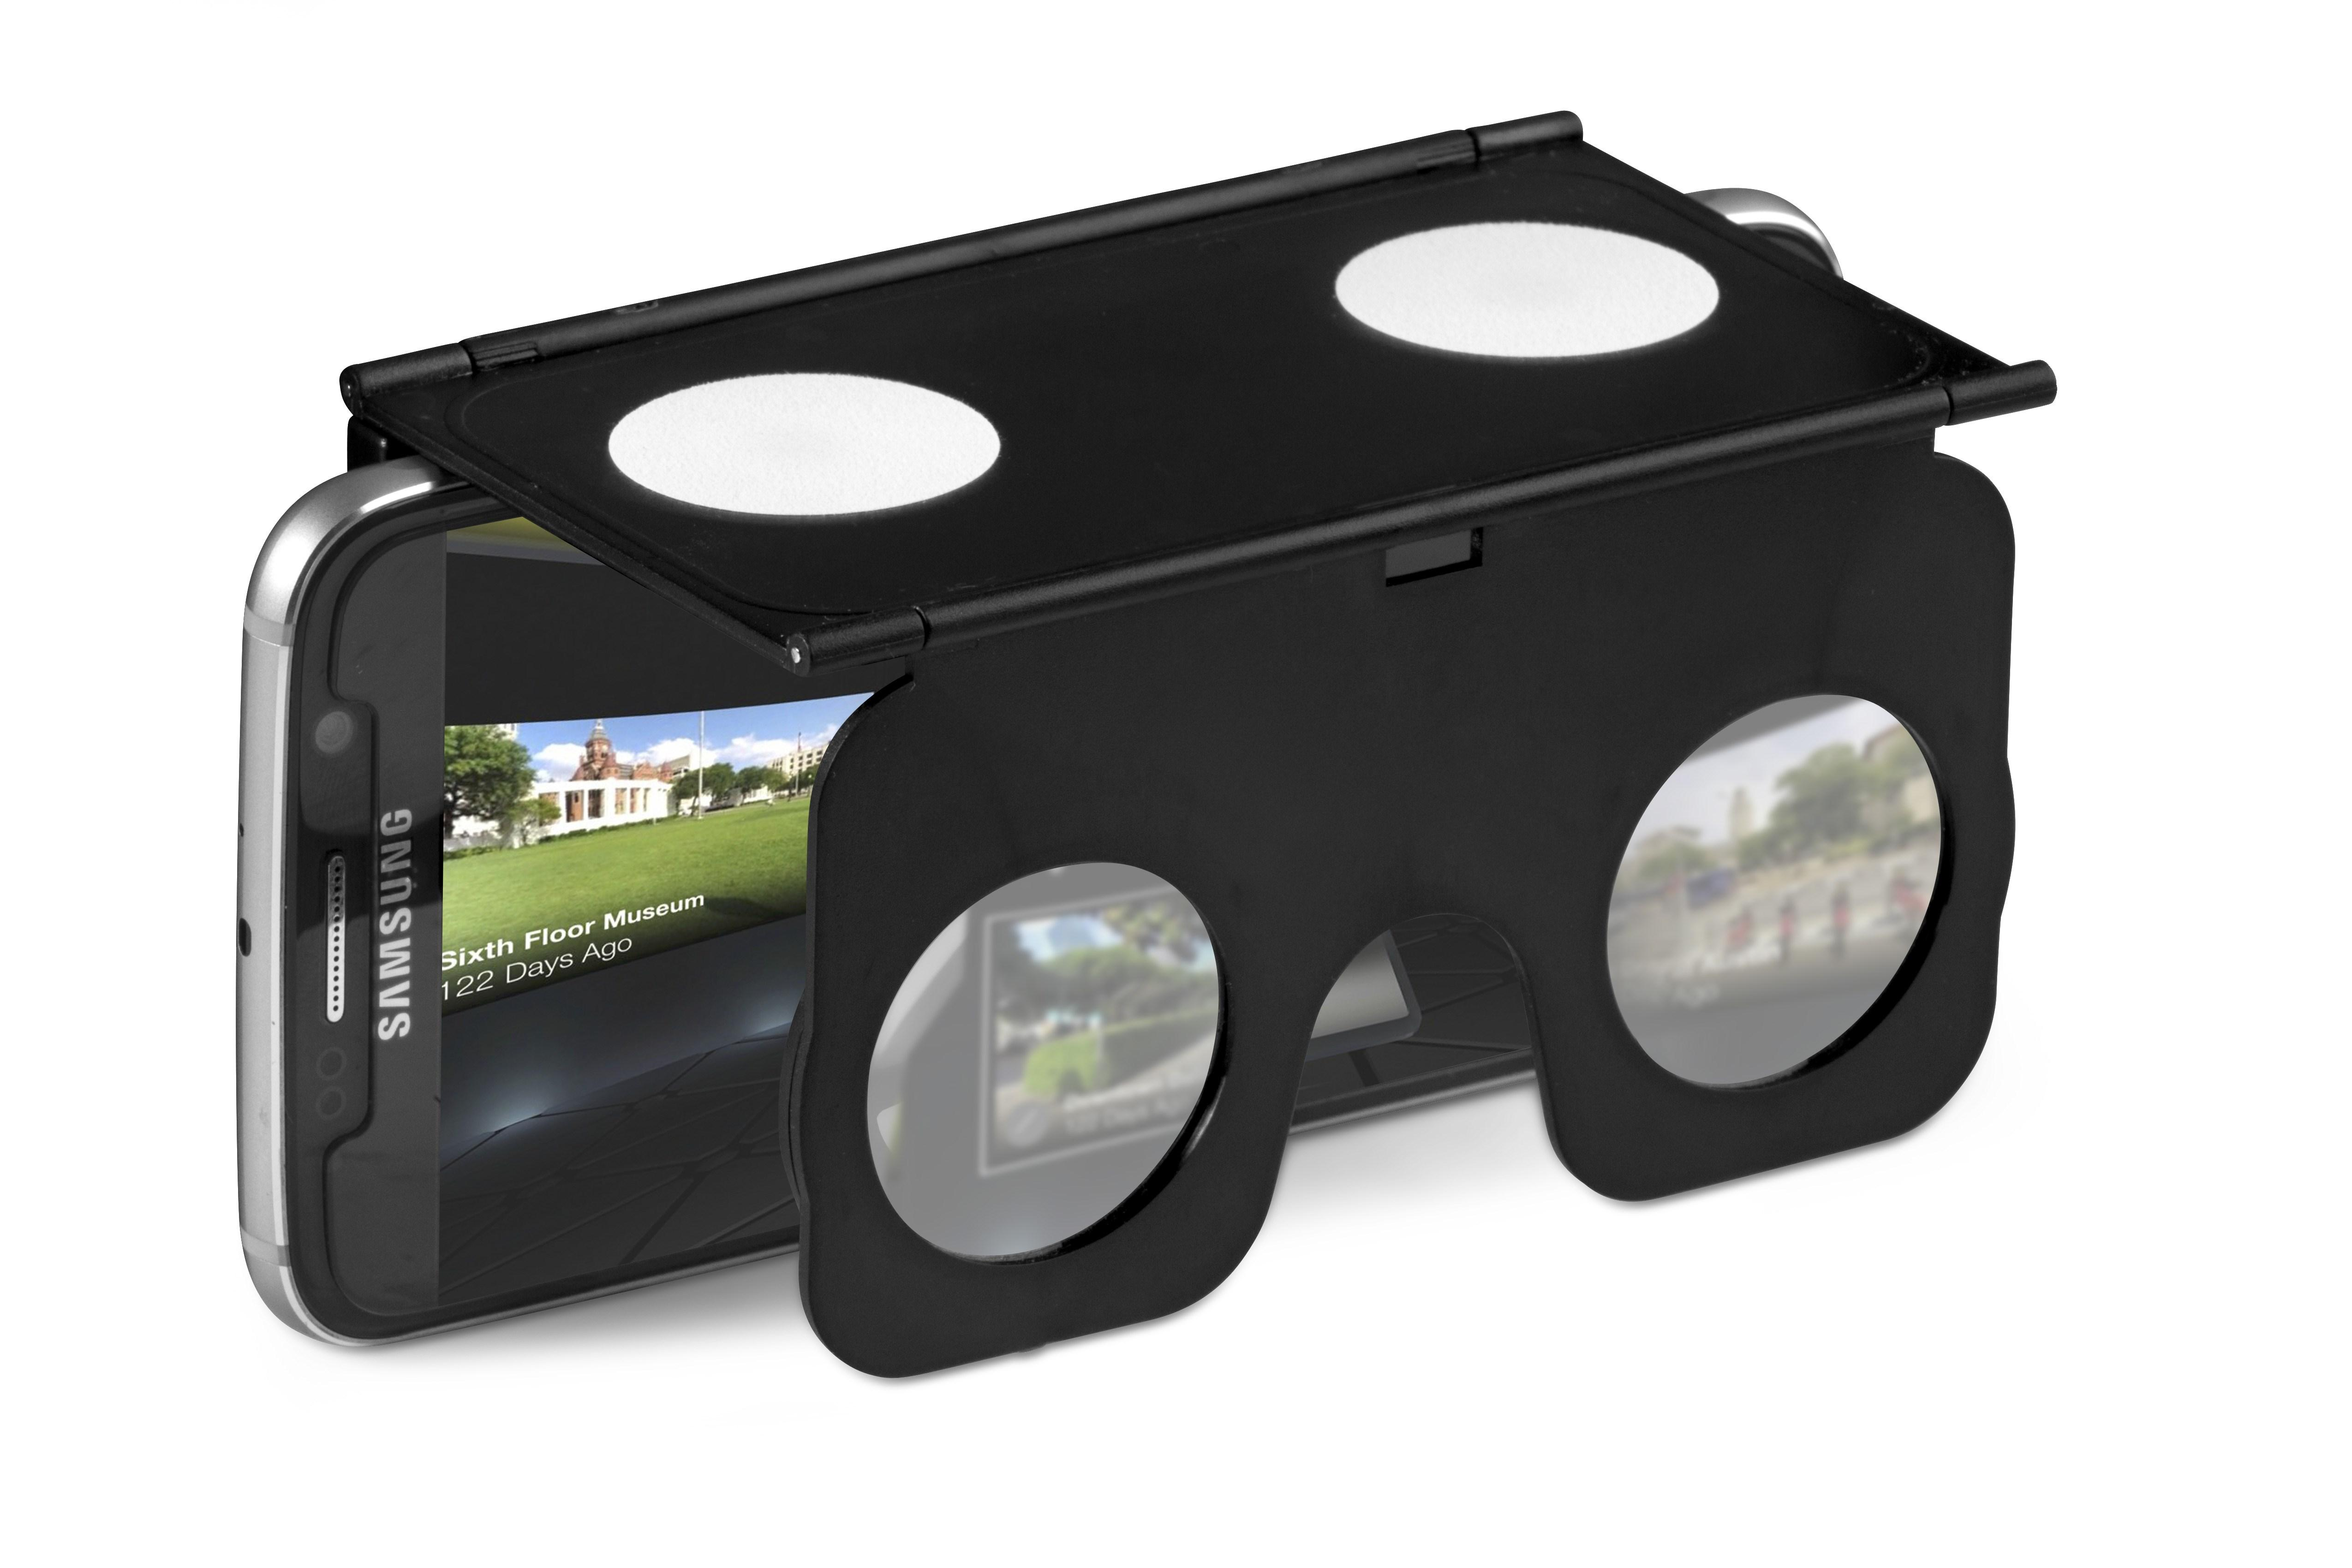 Optix Vr Glasses - Black